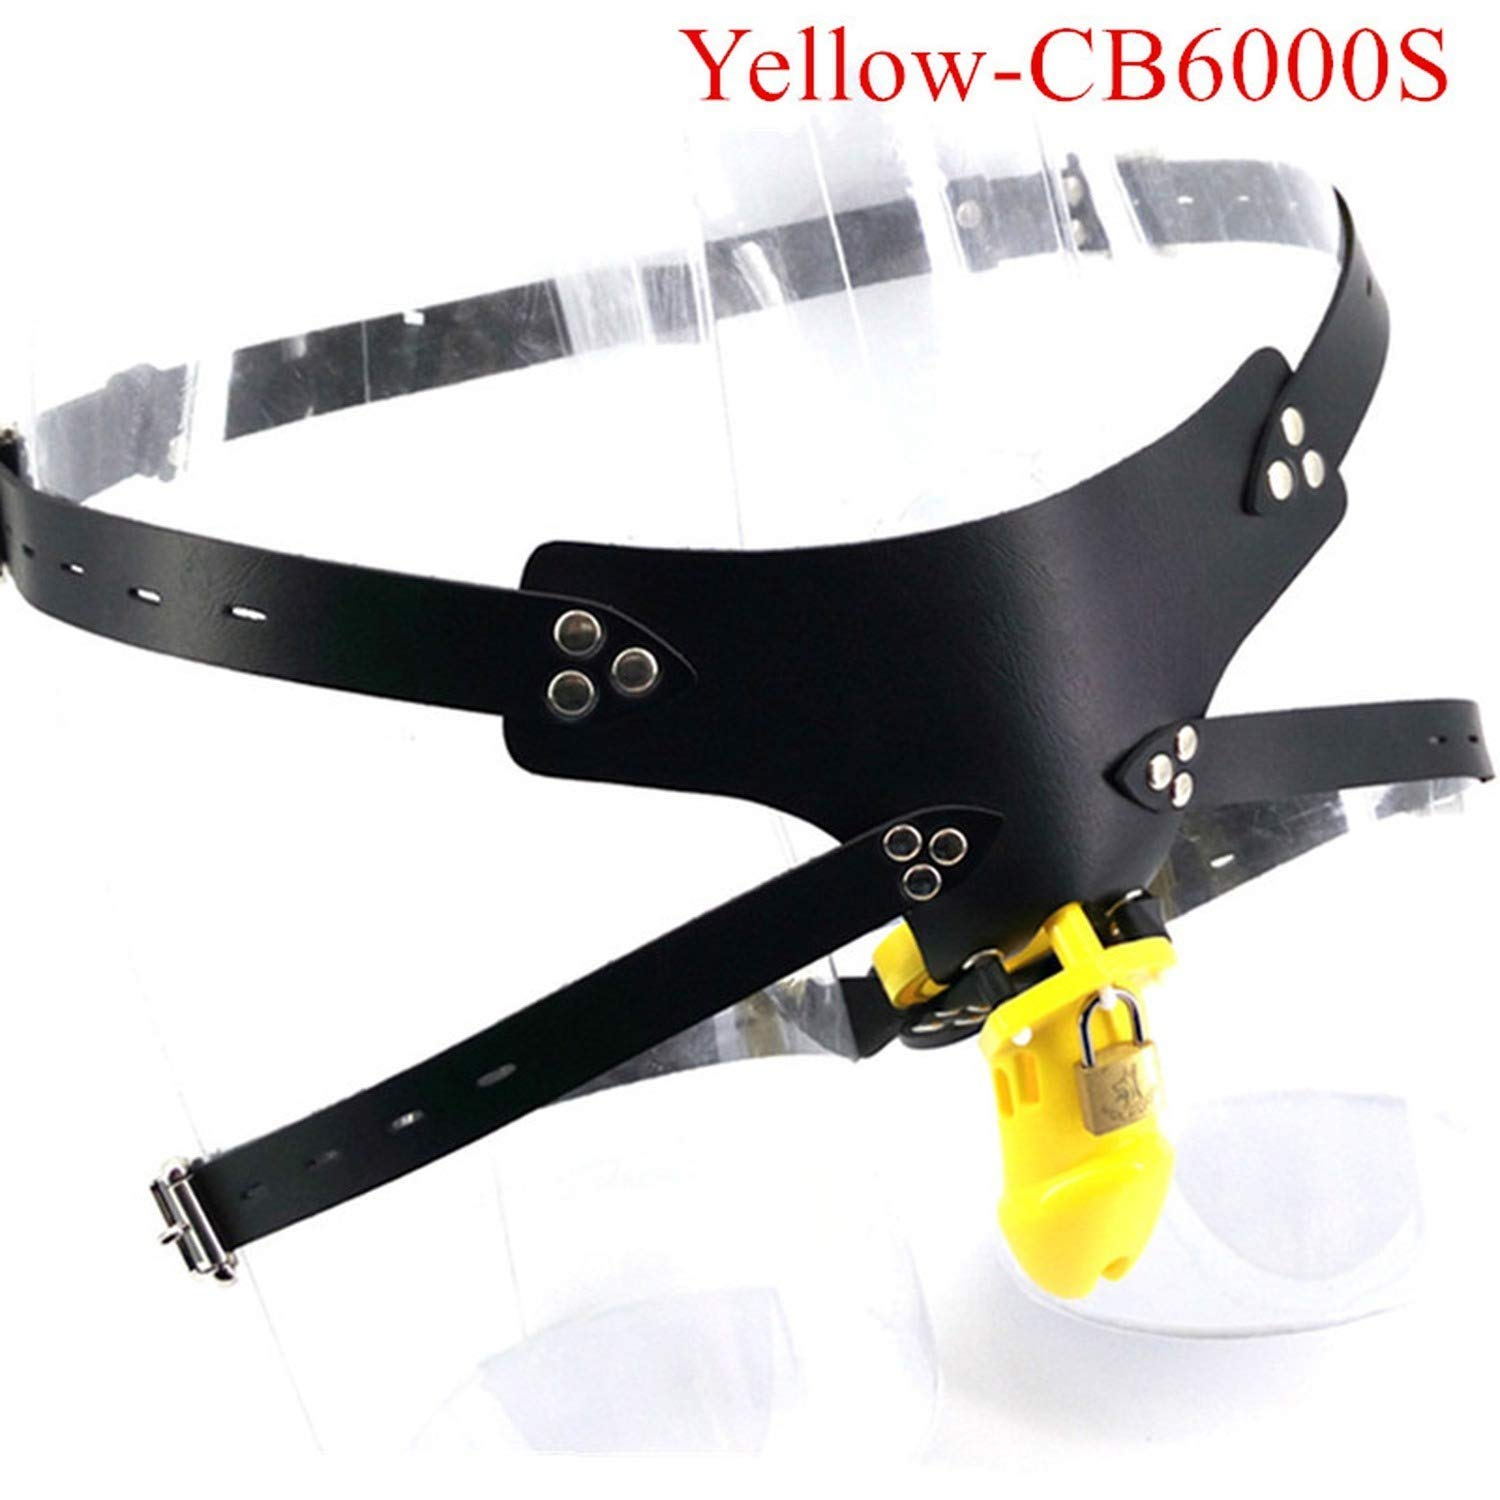 Yellow Plastic Strap On Chasteté Cage Male Chasteté Device with 5 Base Rings Cage Funny Toys for Men,Yellow T-Shirt